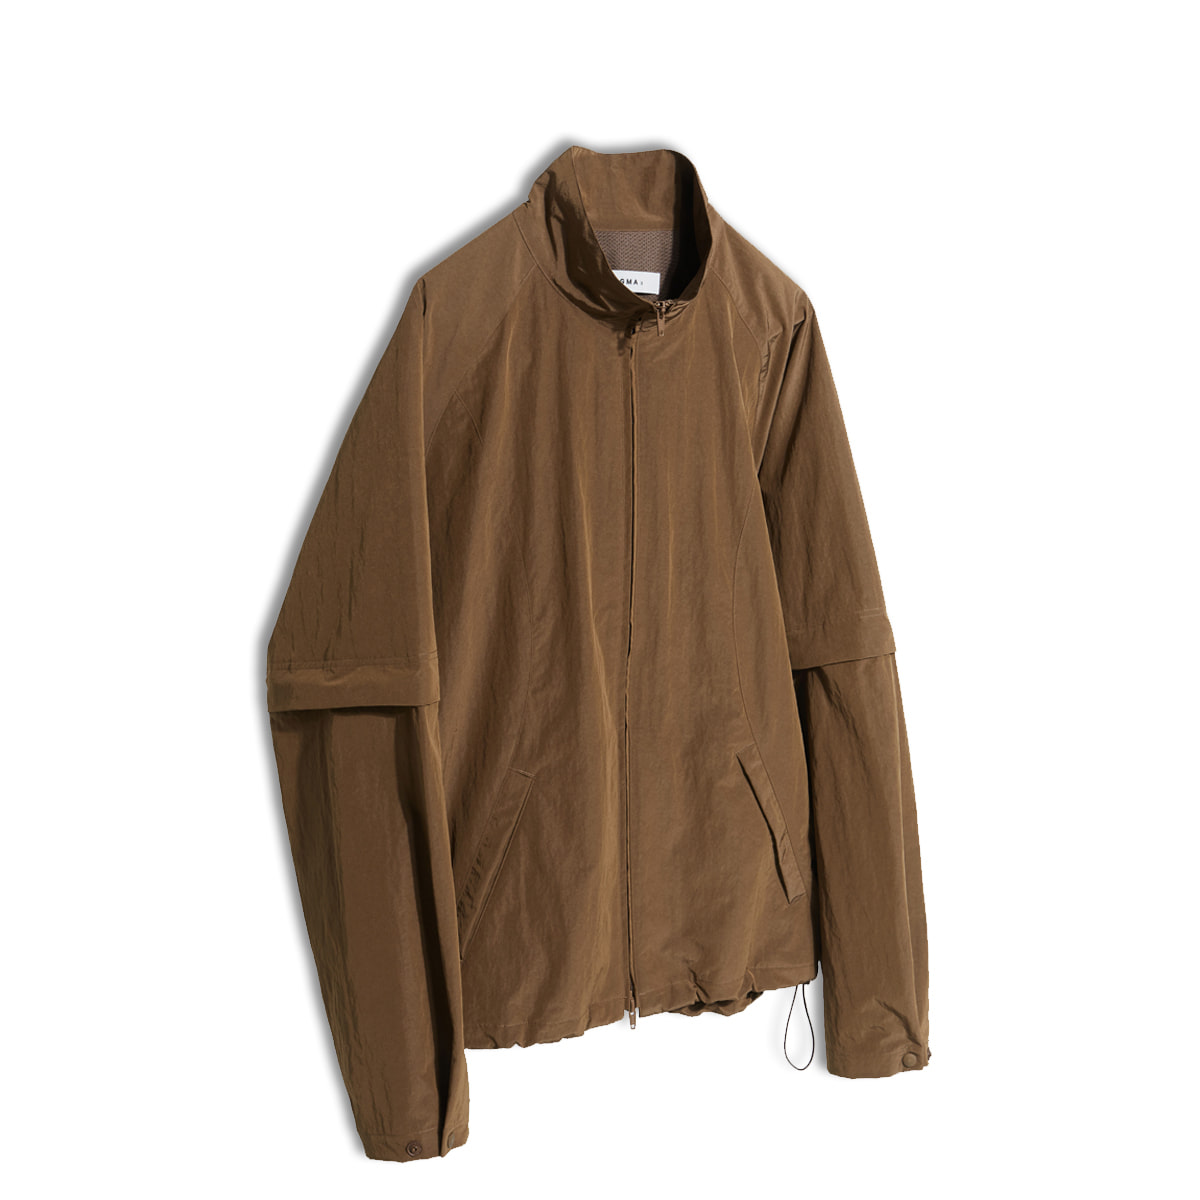 [ENIGMA] DETACHABLE ZIP-UP JACKET 'BROWN'